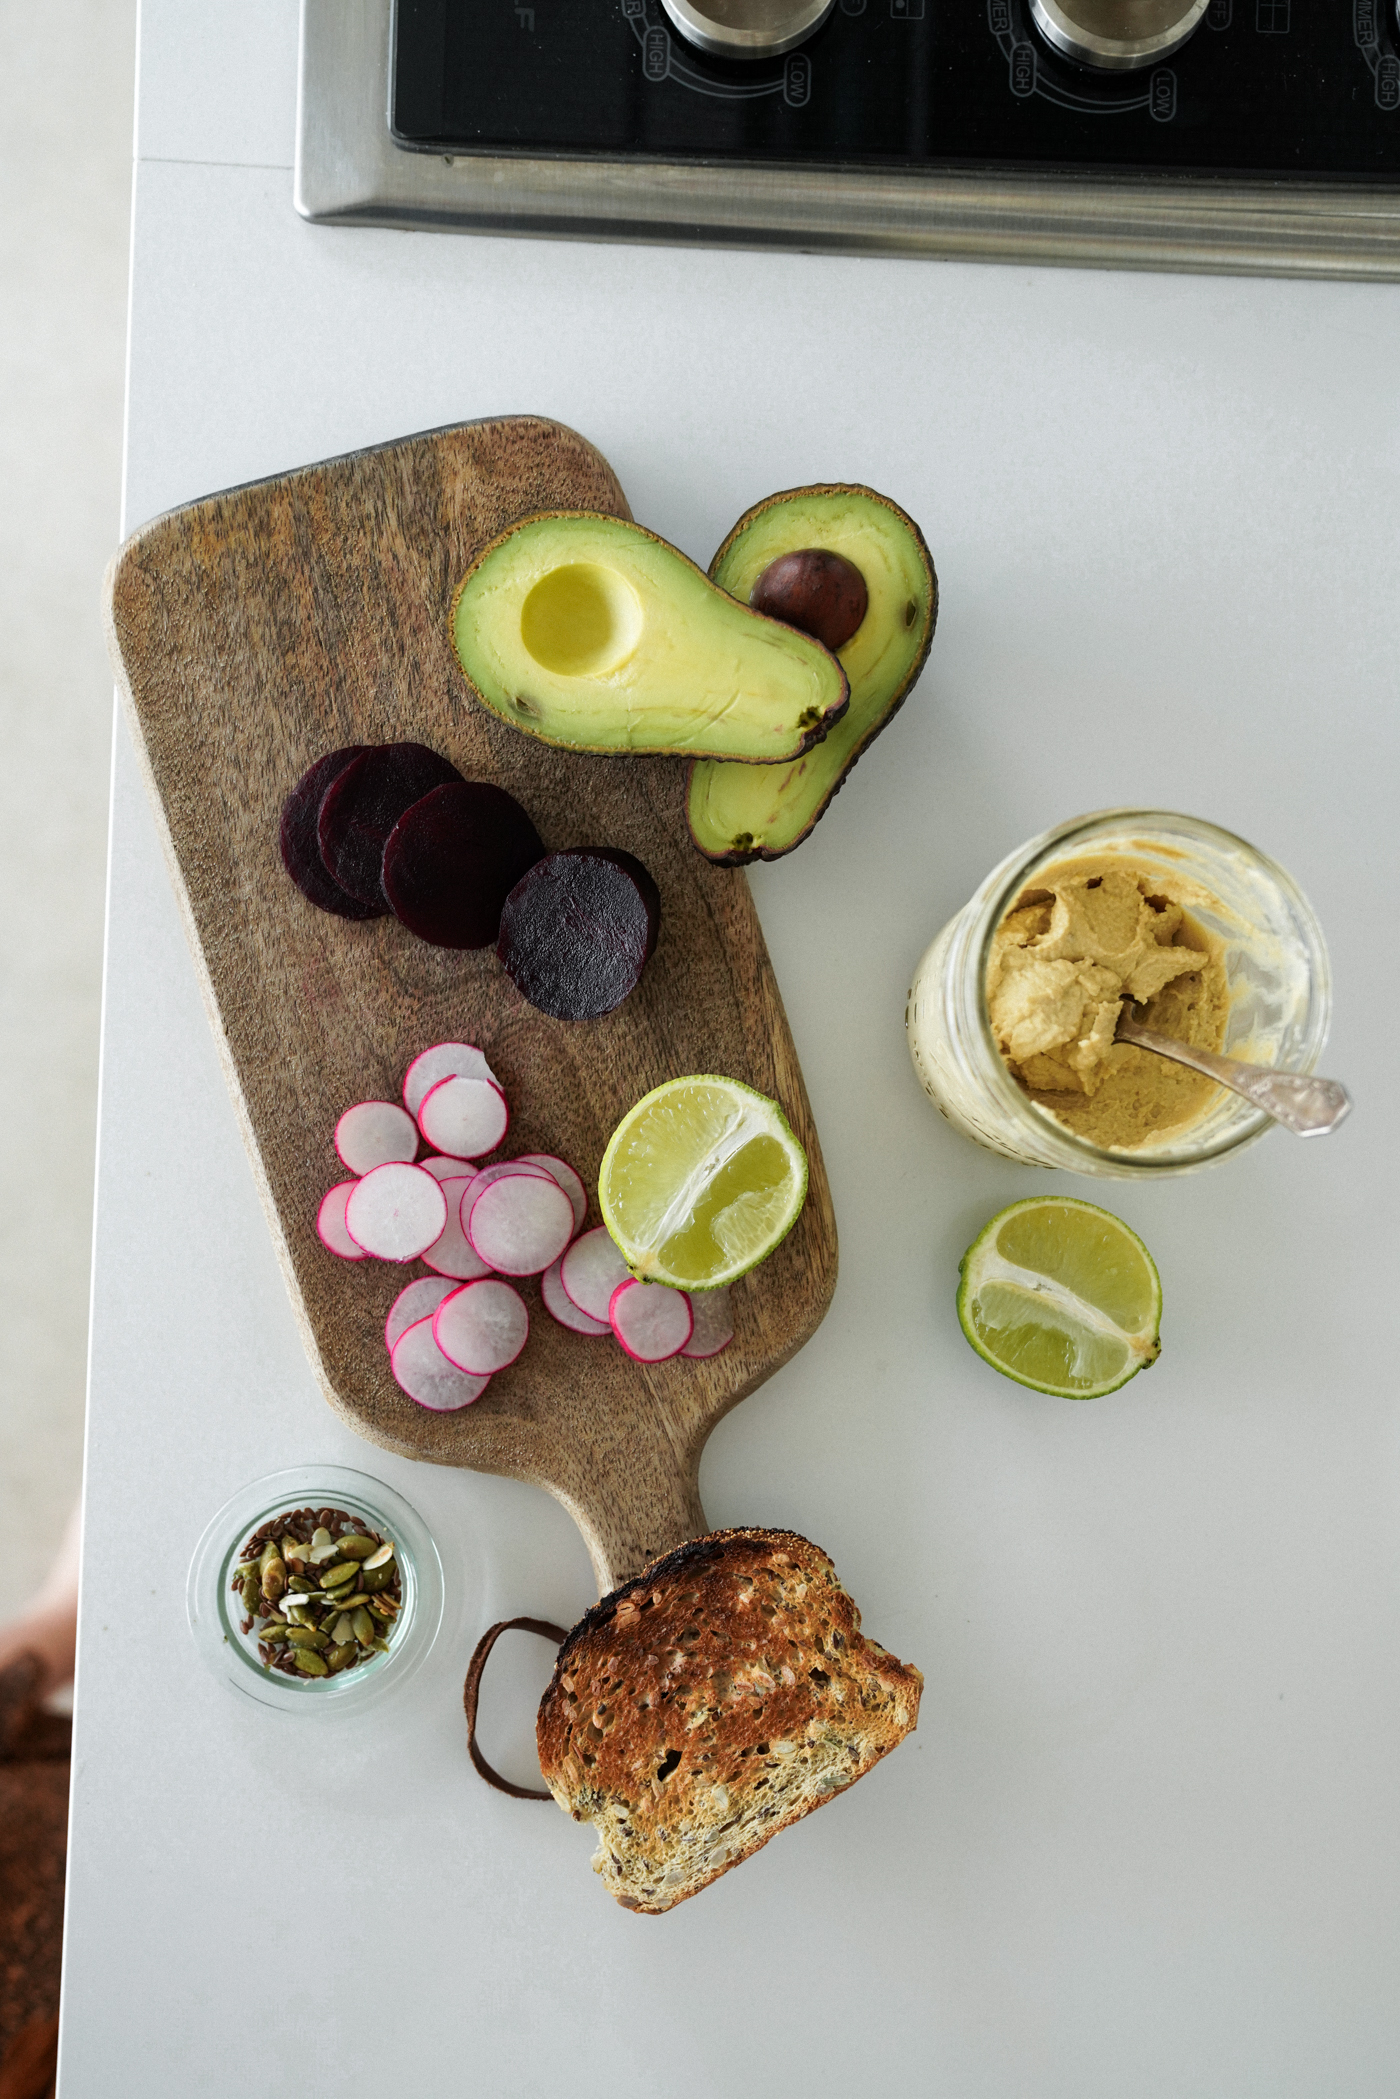 avocado_toast_with_beets_hummus_and_pickled_radishes-2.jpg